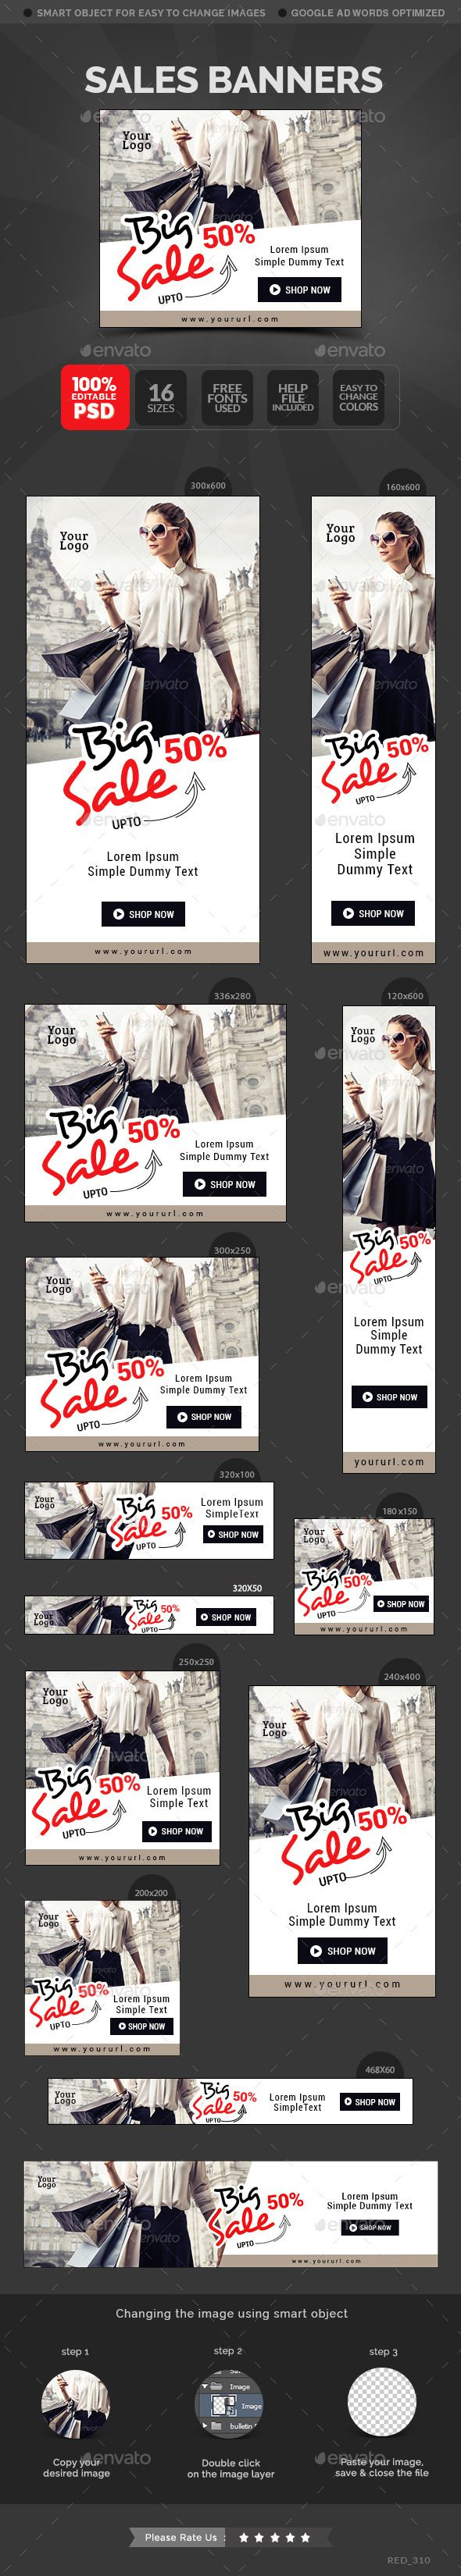 Sale Banners Template #design #web Download: http://graphicriver.net/item/sale-banners/11932737?ref=ksioks